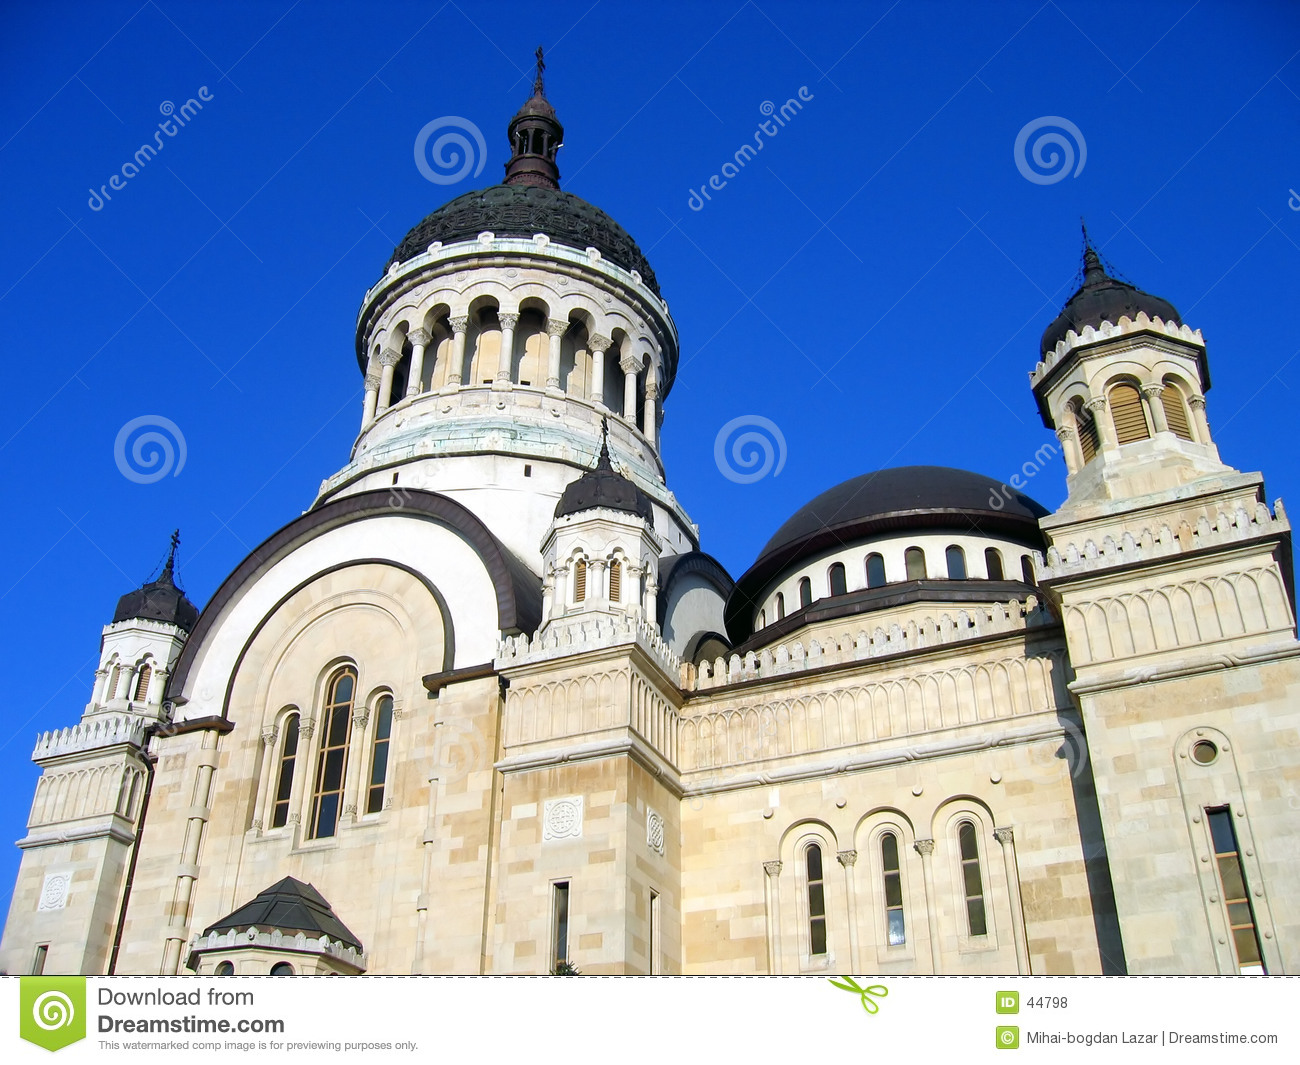 Orthodox cathedral in cluj napoca romania royalty free - Romanian architectural styles ...